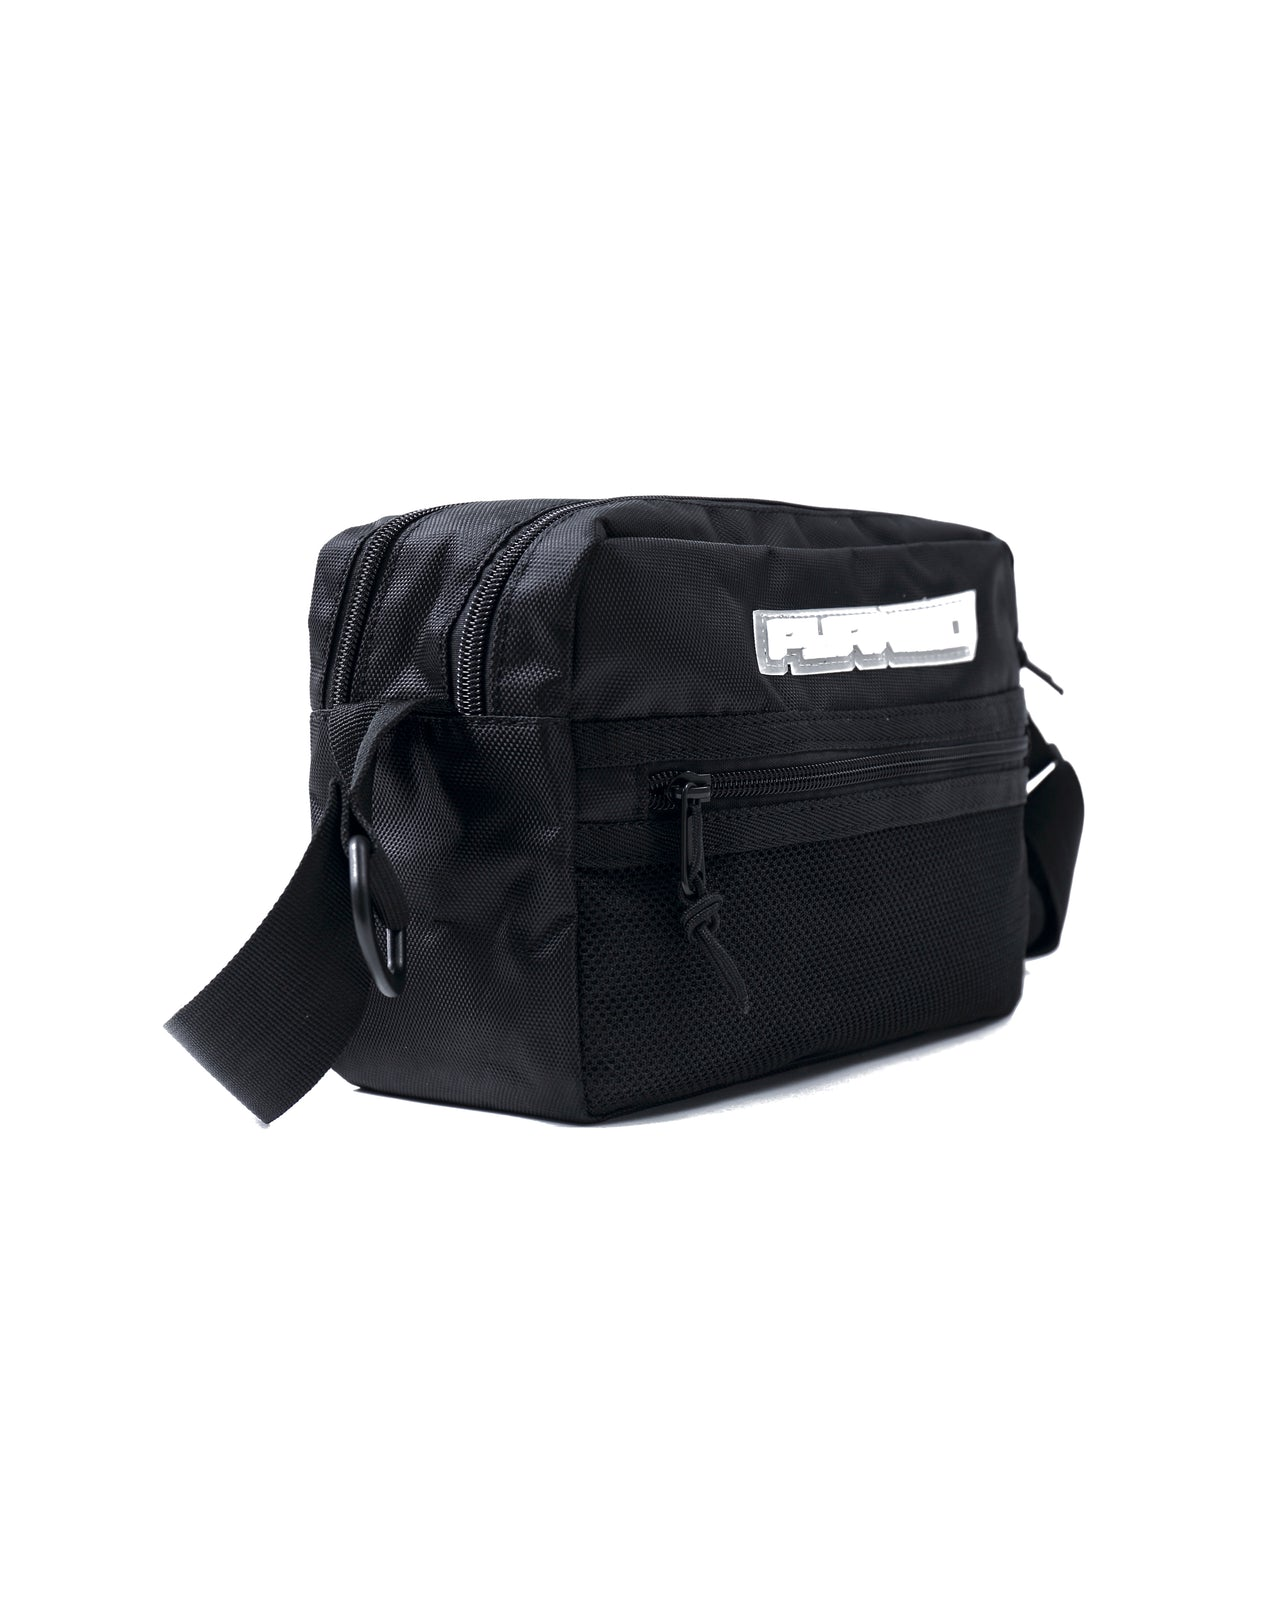 MEDIUM TECH SHOULDER BAG - Color: BLACK